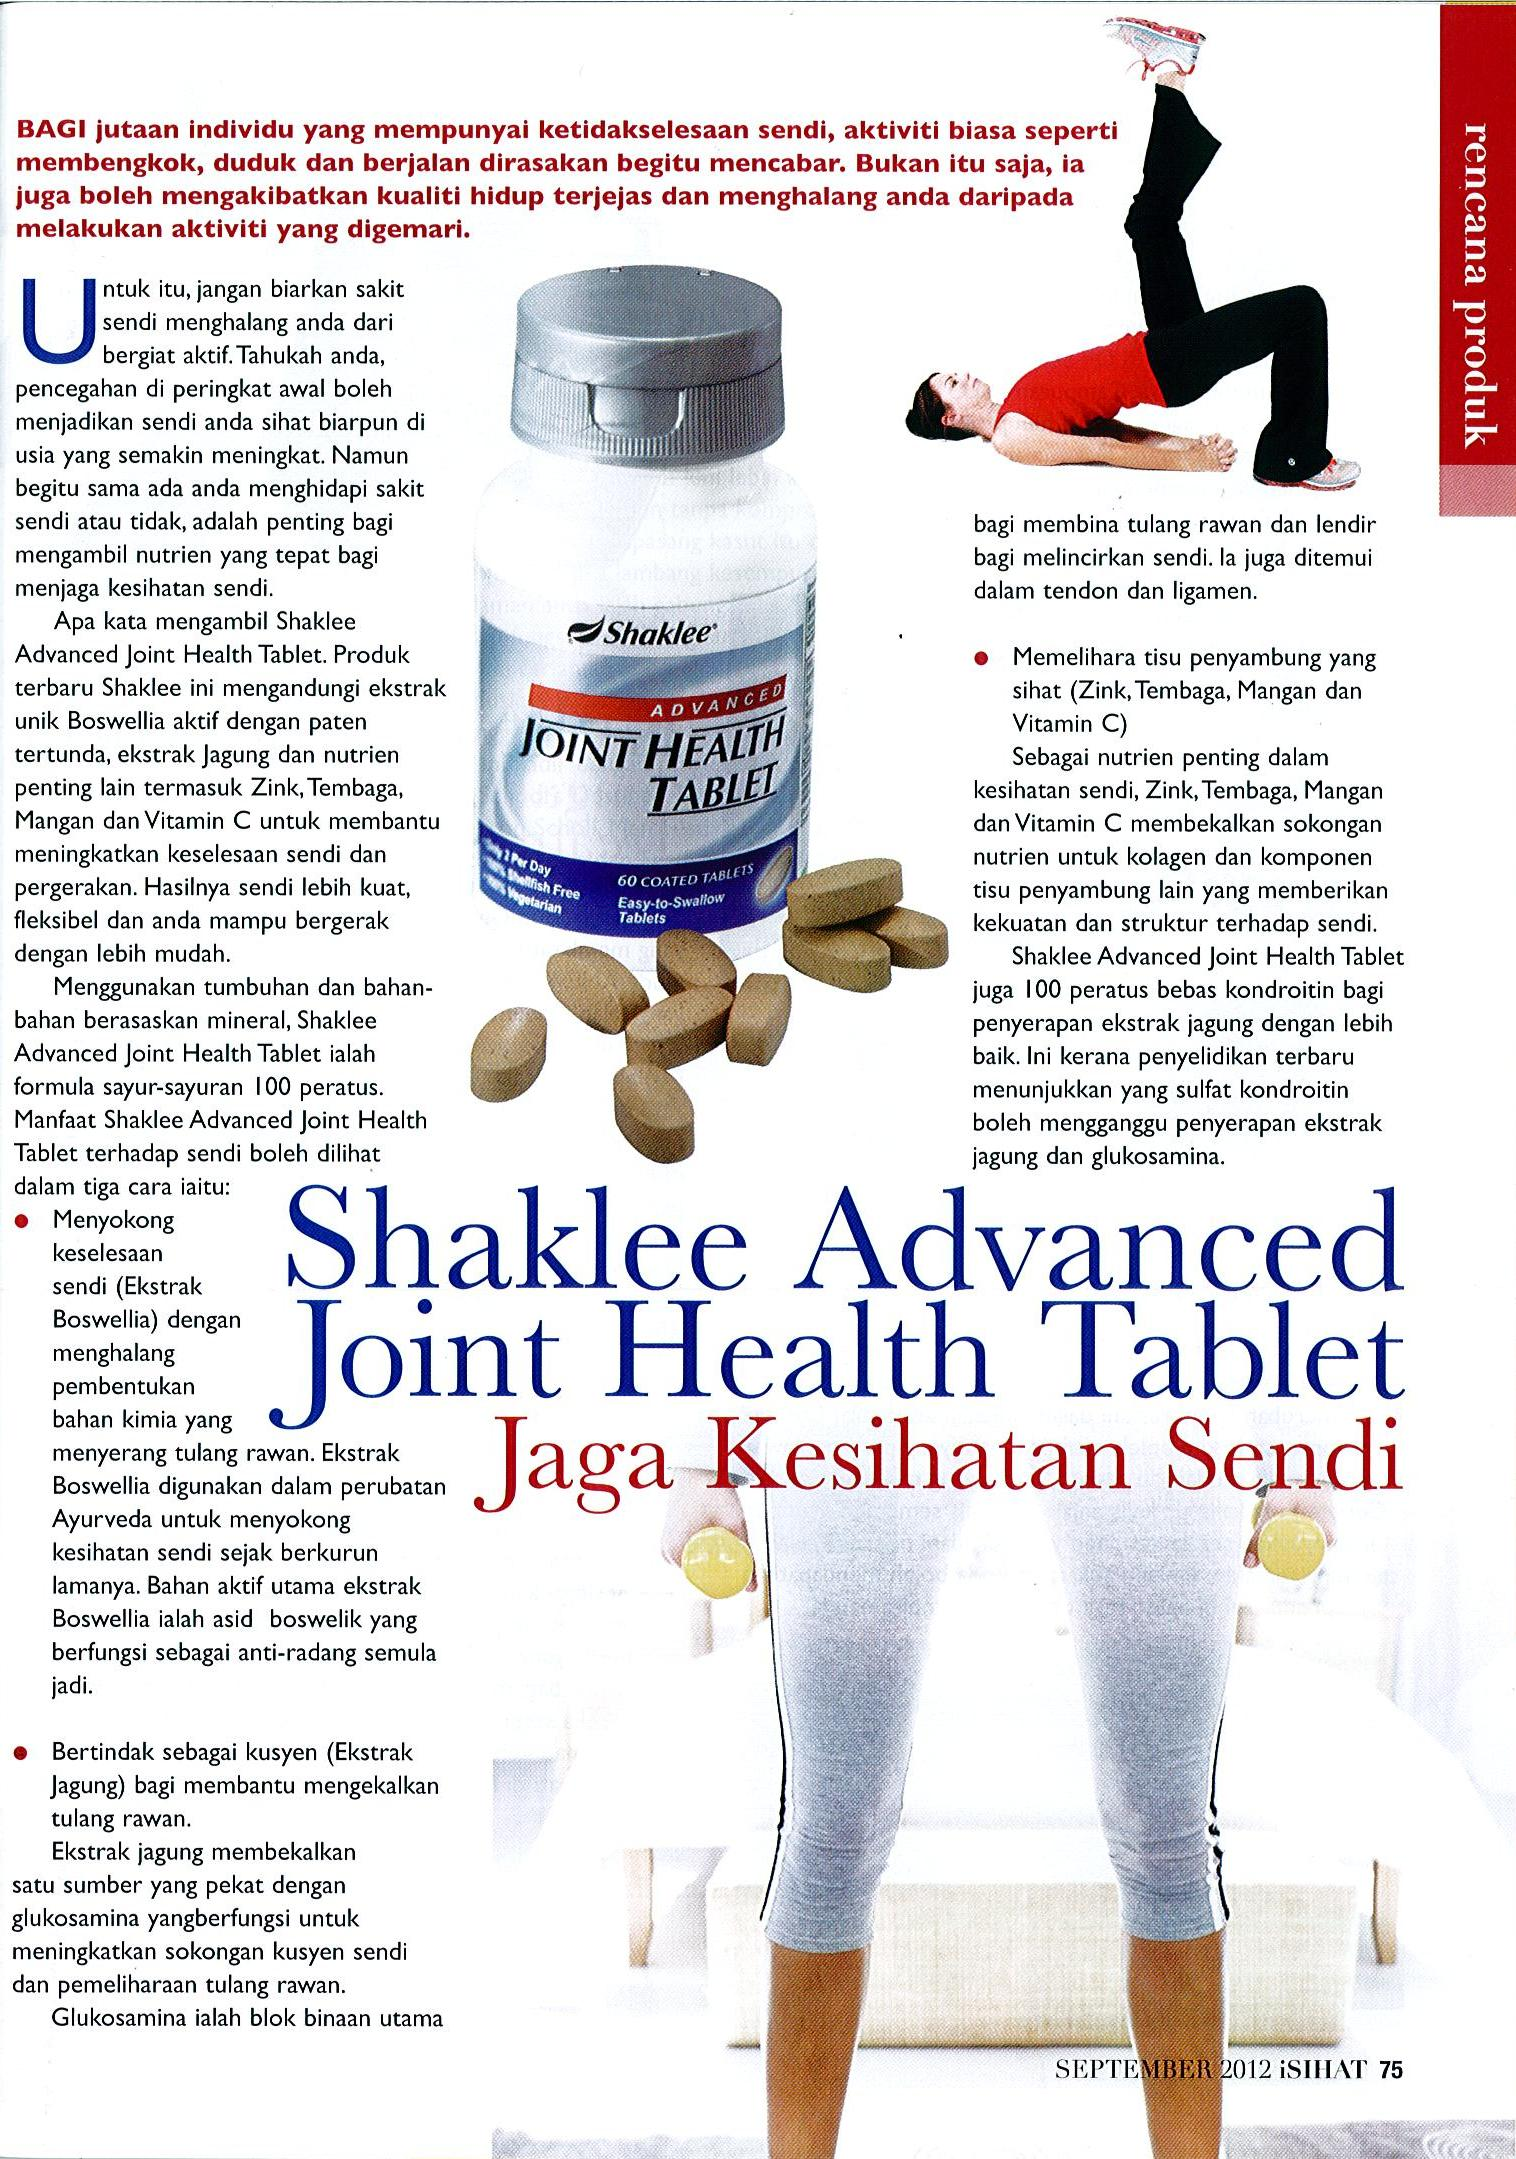 Advanced Joint Health Tablet Advanced Joint Health Tablet Advanced Joint Health Tablet (AJHT) Shaklee Yang Anda Perlu Tahu Advanced Joint Health iSIHAT